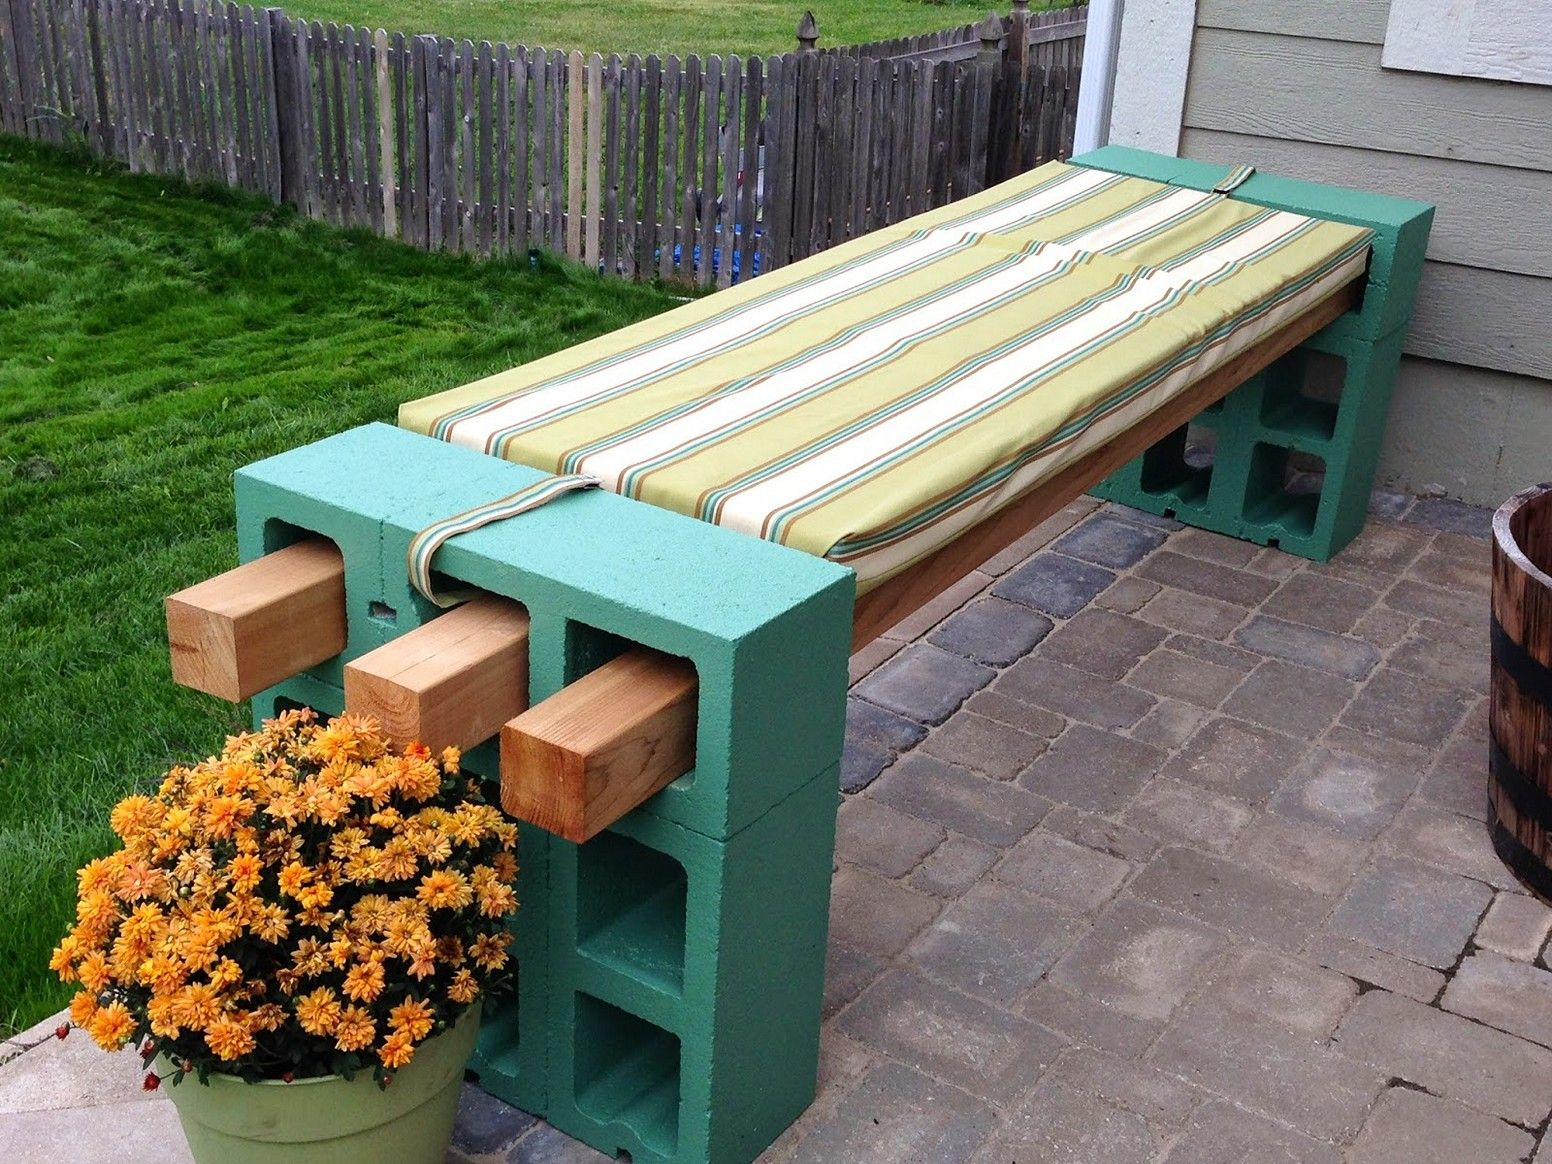 Diy patio furniture cinder blocks - Everyone Knows That Cinder Blocks Are A Building Material We Will Show You Some Creative Diy Cinder Block Bench Ideas And See For Yourself That Cinder